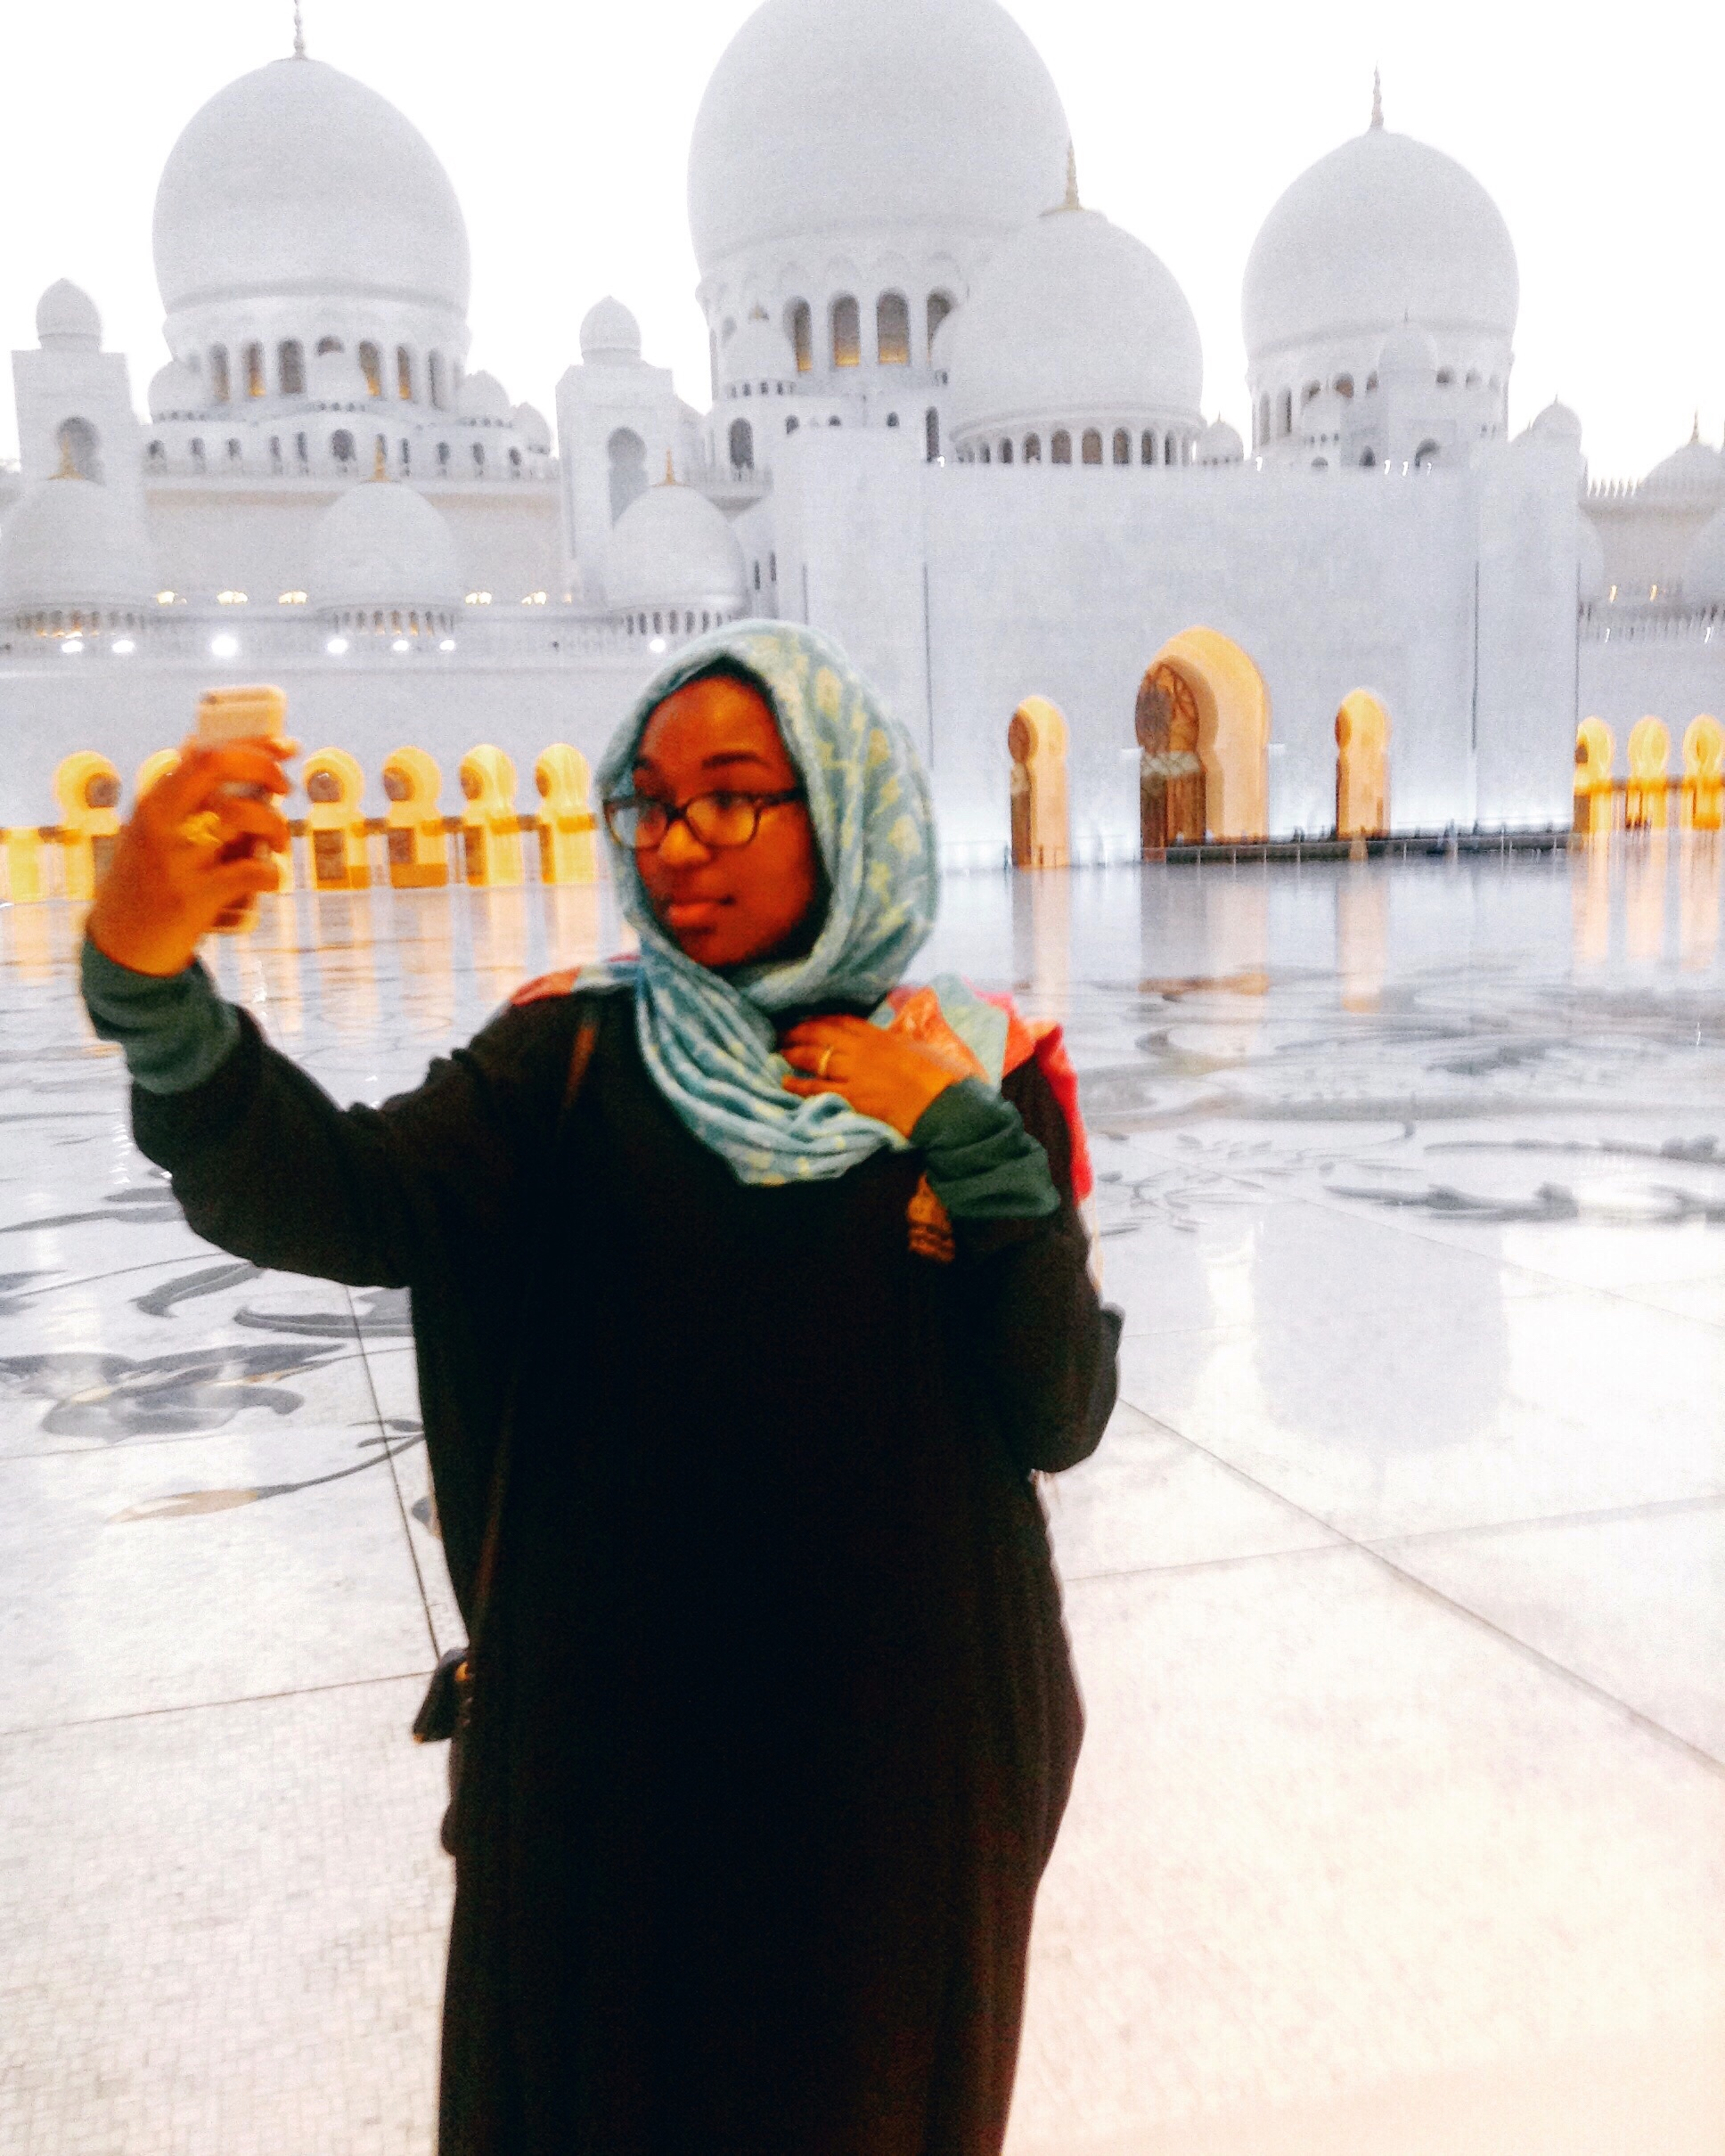 Selfie game strong! Visiting the  Sheikh Zayed Grand Mosque . This moment was made possible because I asked my new job for unpaid time off during my new employee probationary period to visit the United Arab Emirates: Abu Dhabi and Dubai.